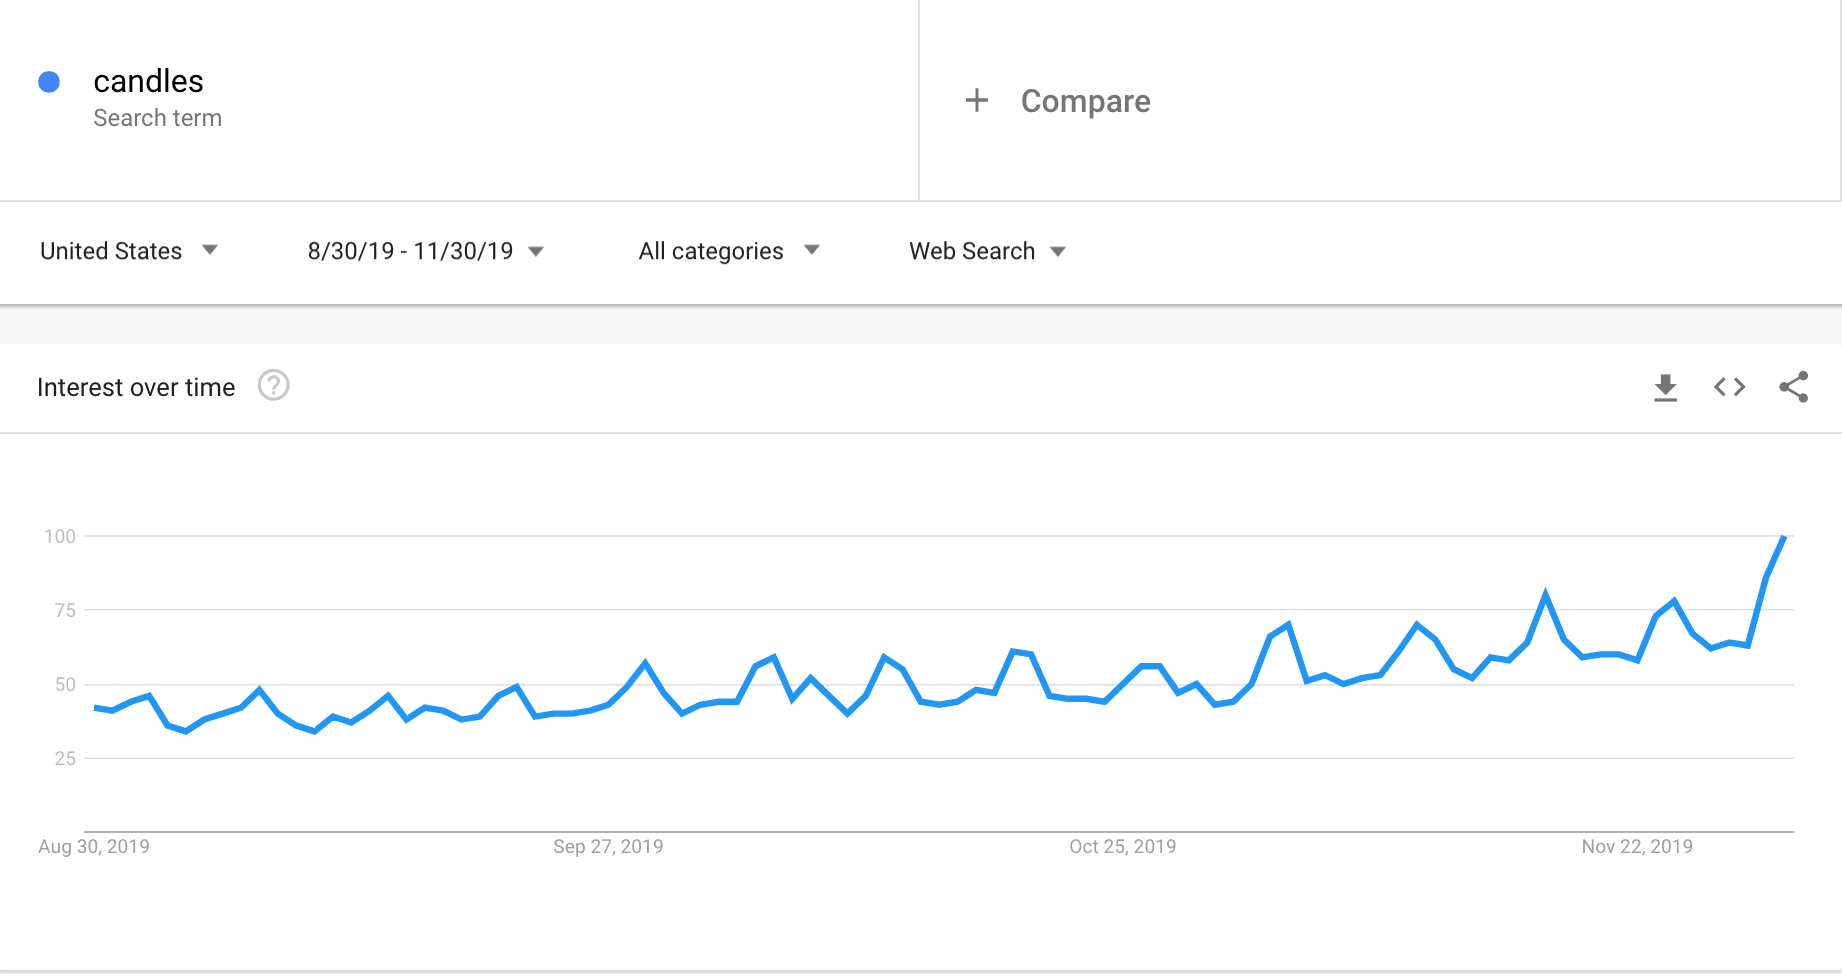 Google Trends graph showing the interest in candles